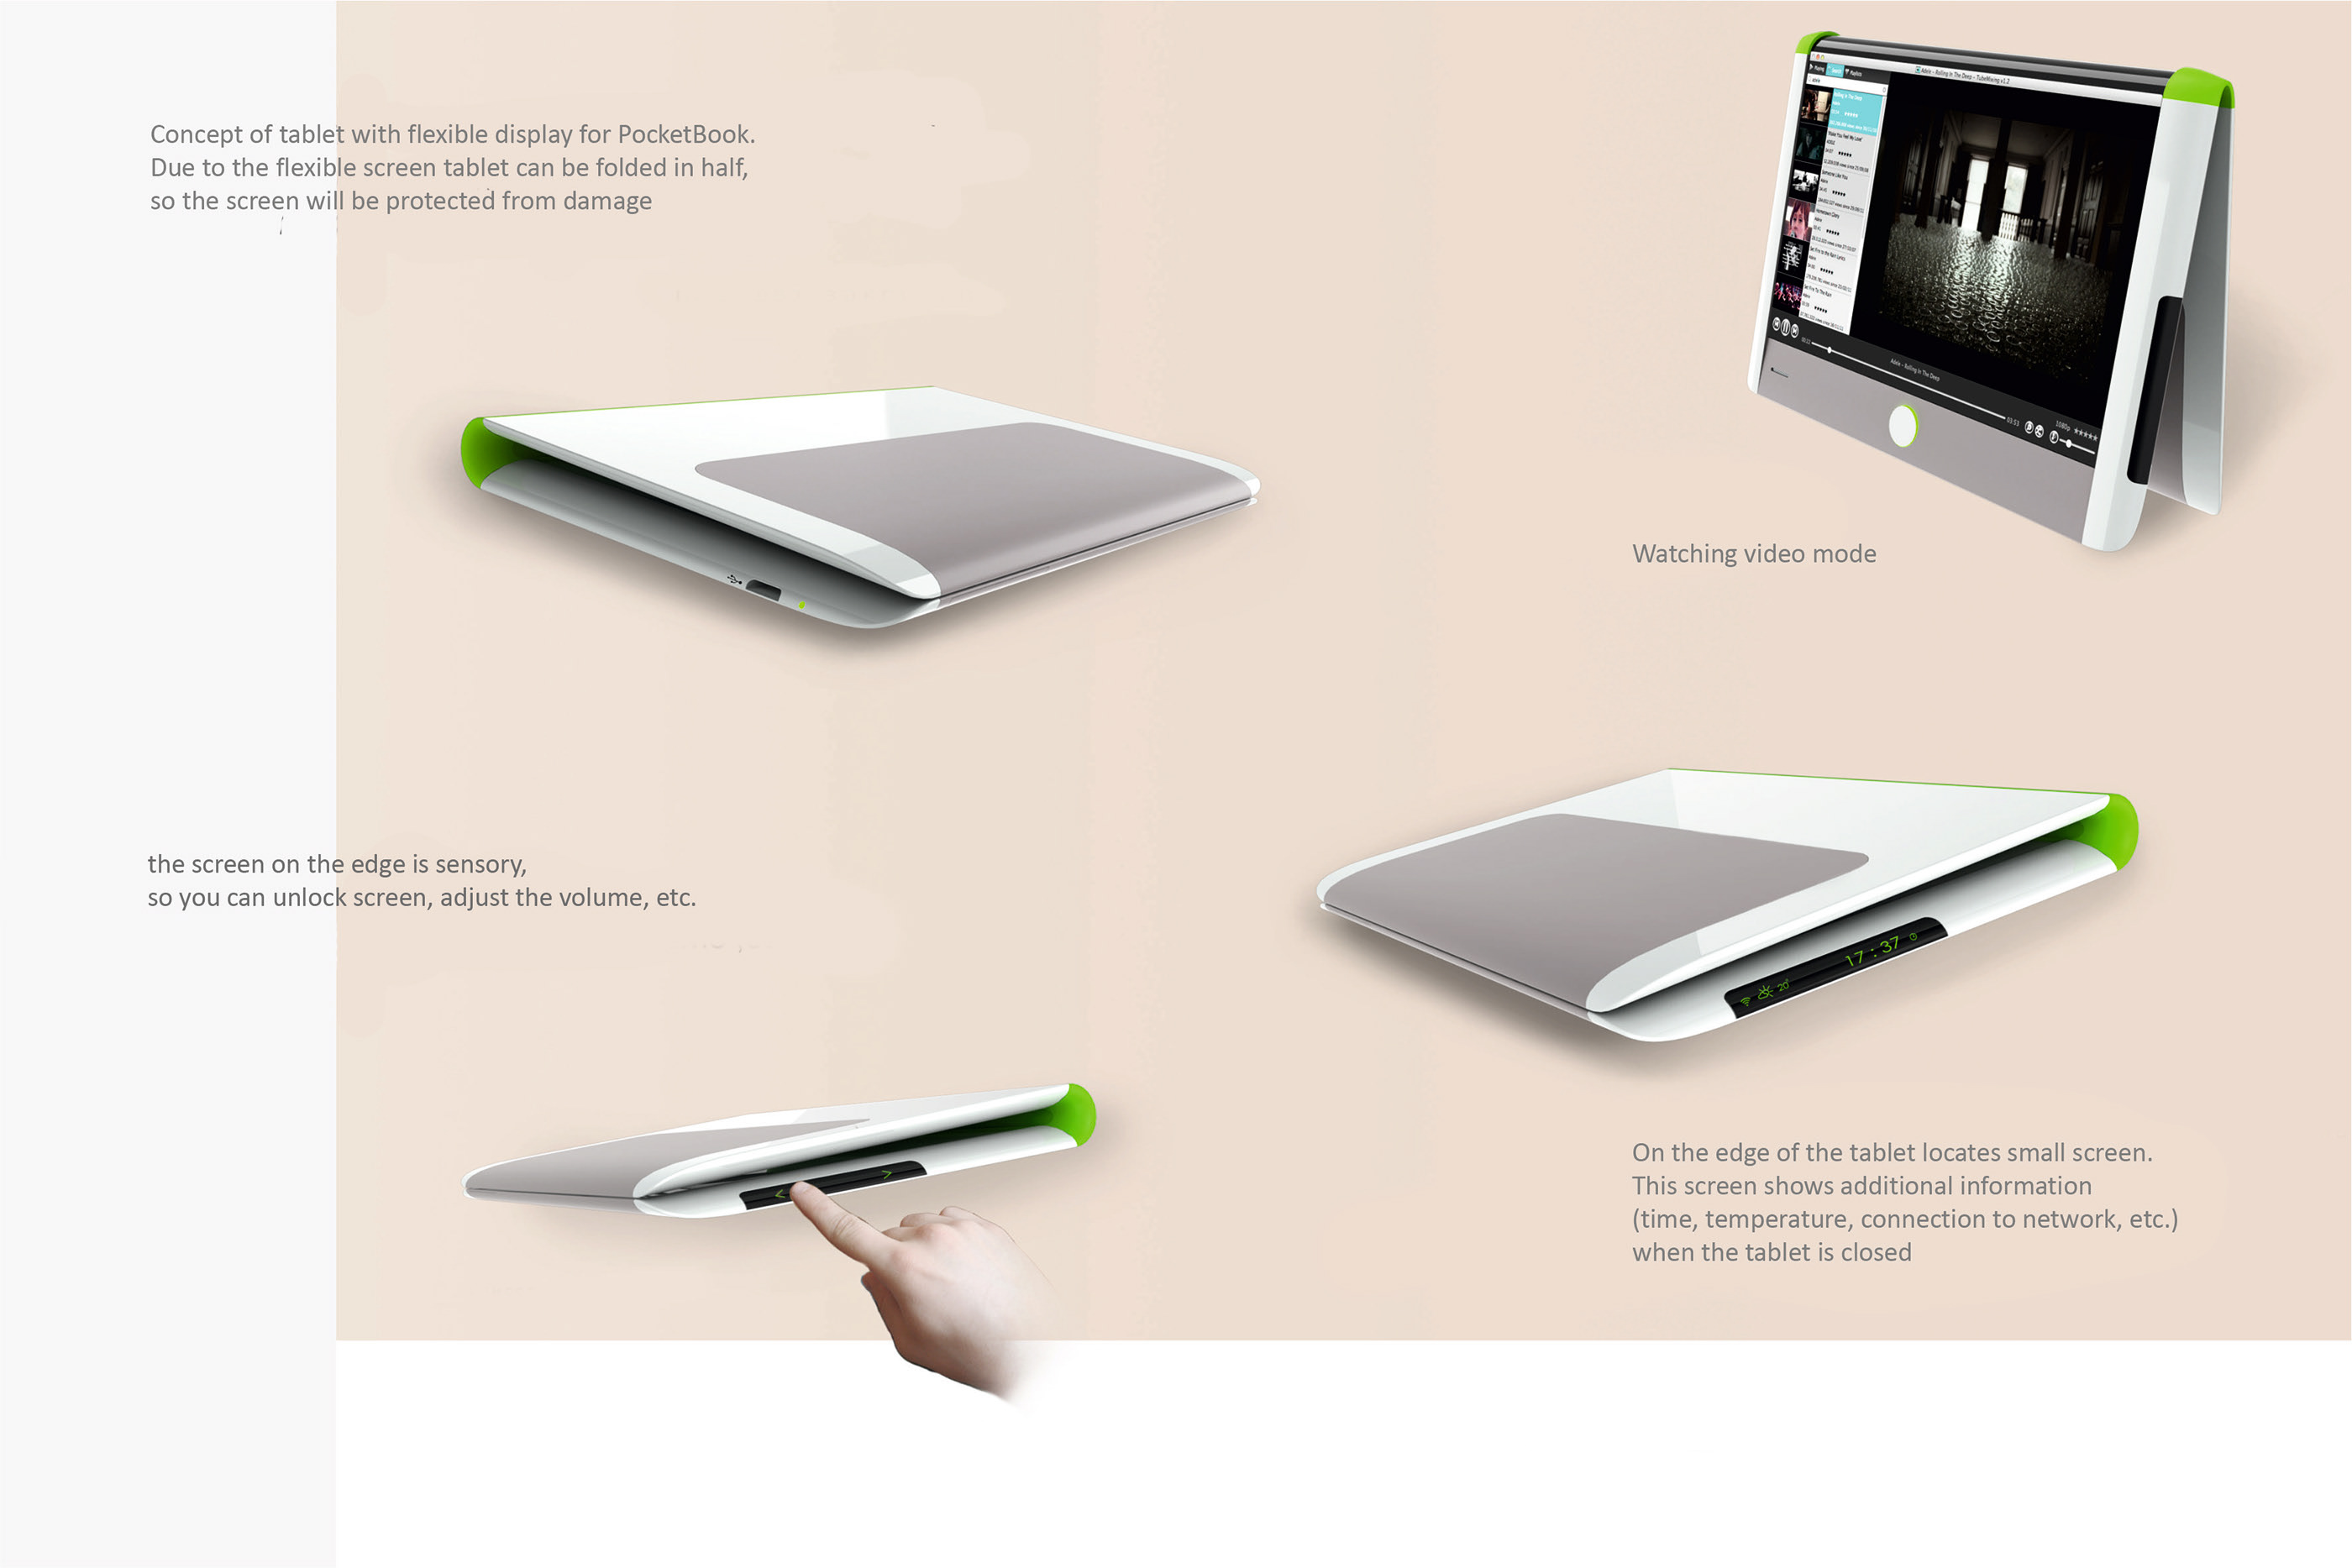 Concept of the tablet for PocketBook on Behance